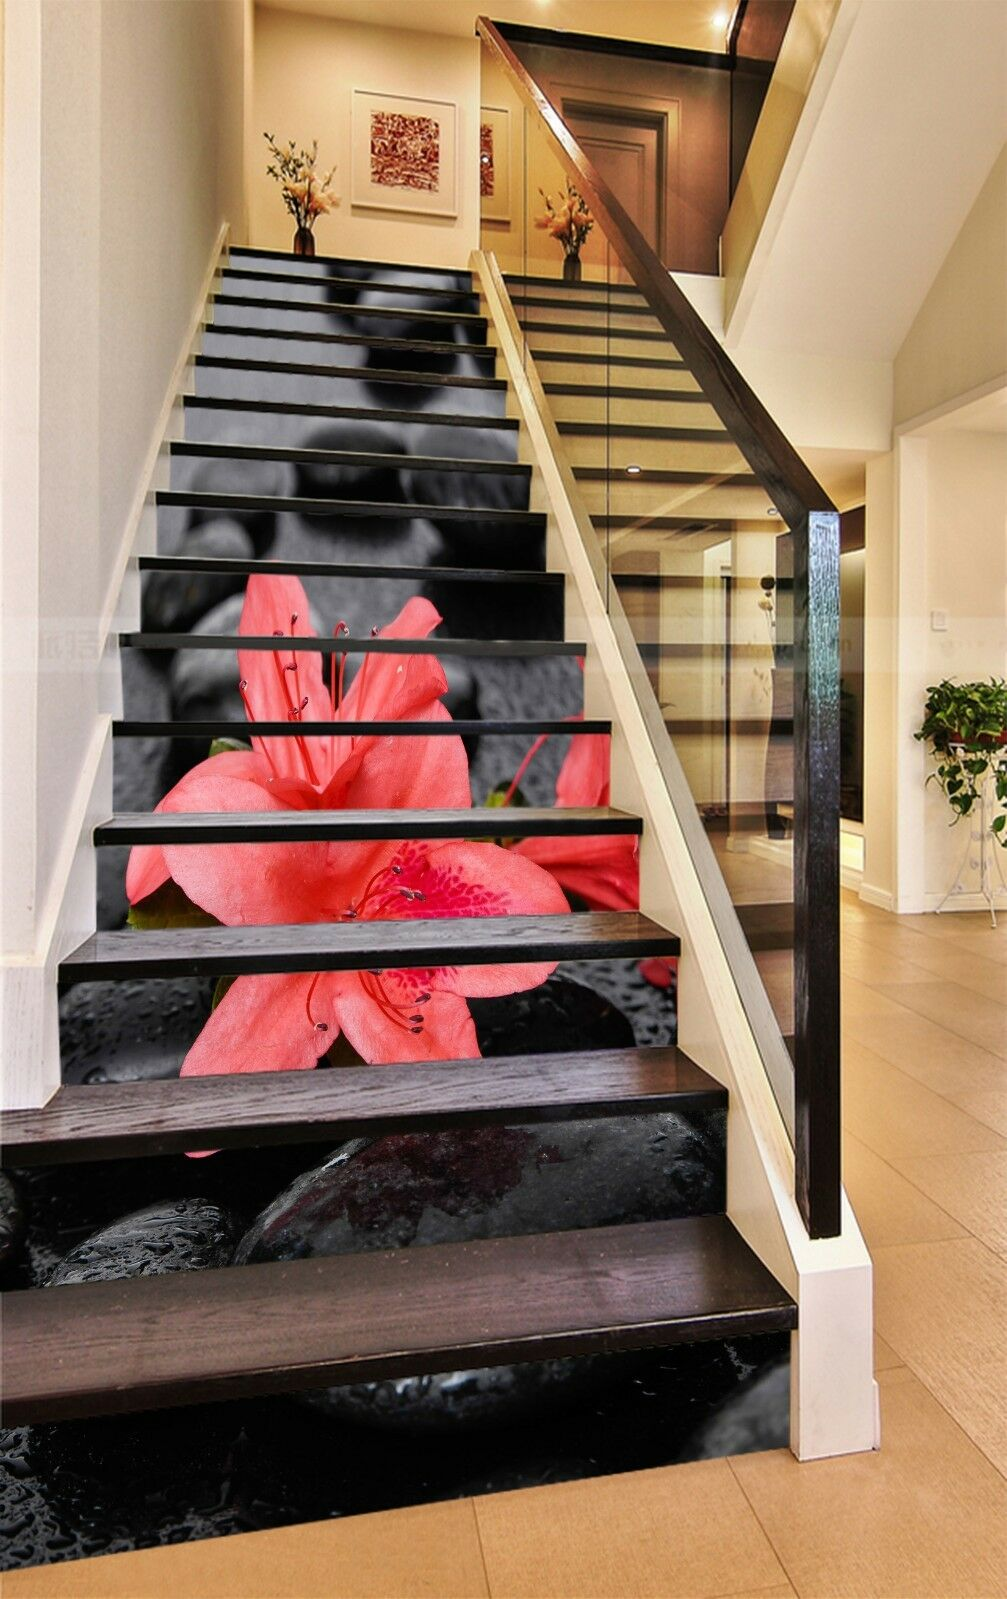 3D Stone flower 5 Stair Risers Decoration Photo Mural Vinyl Decal Wallpaper UK